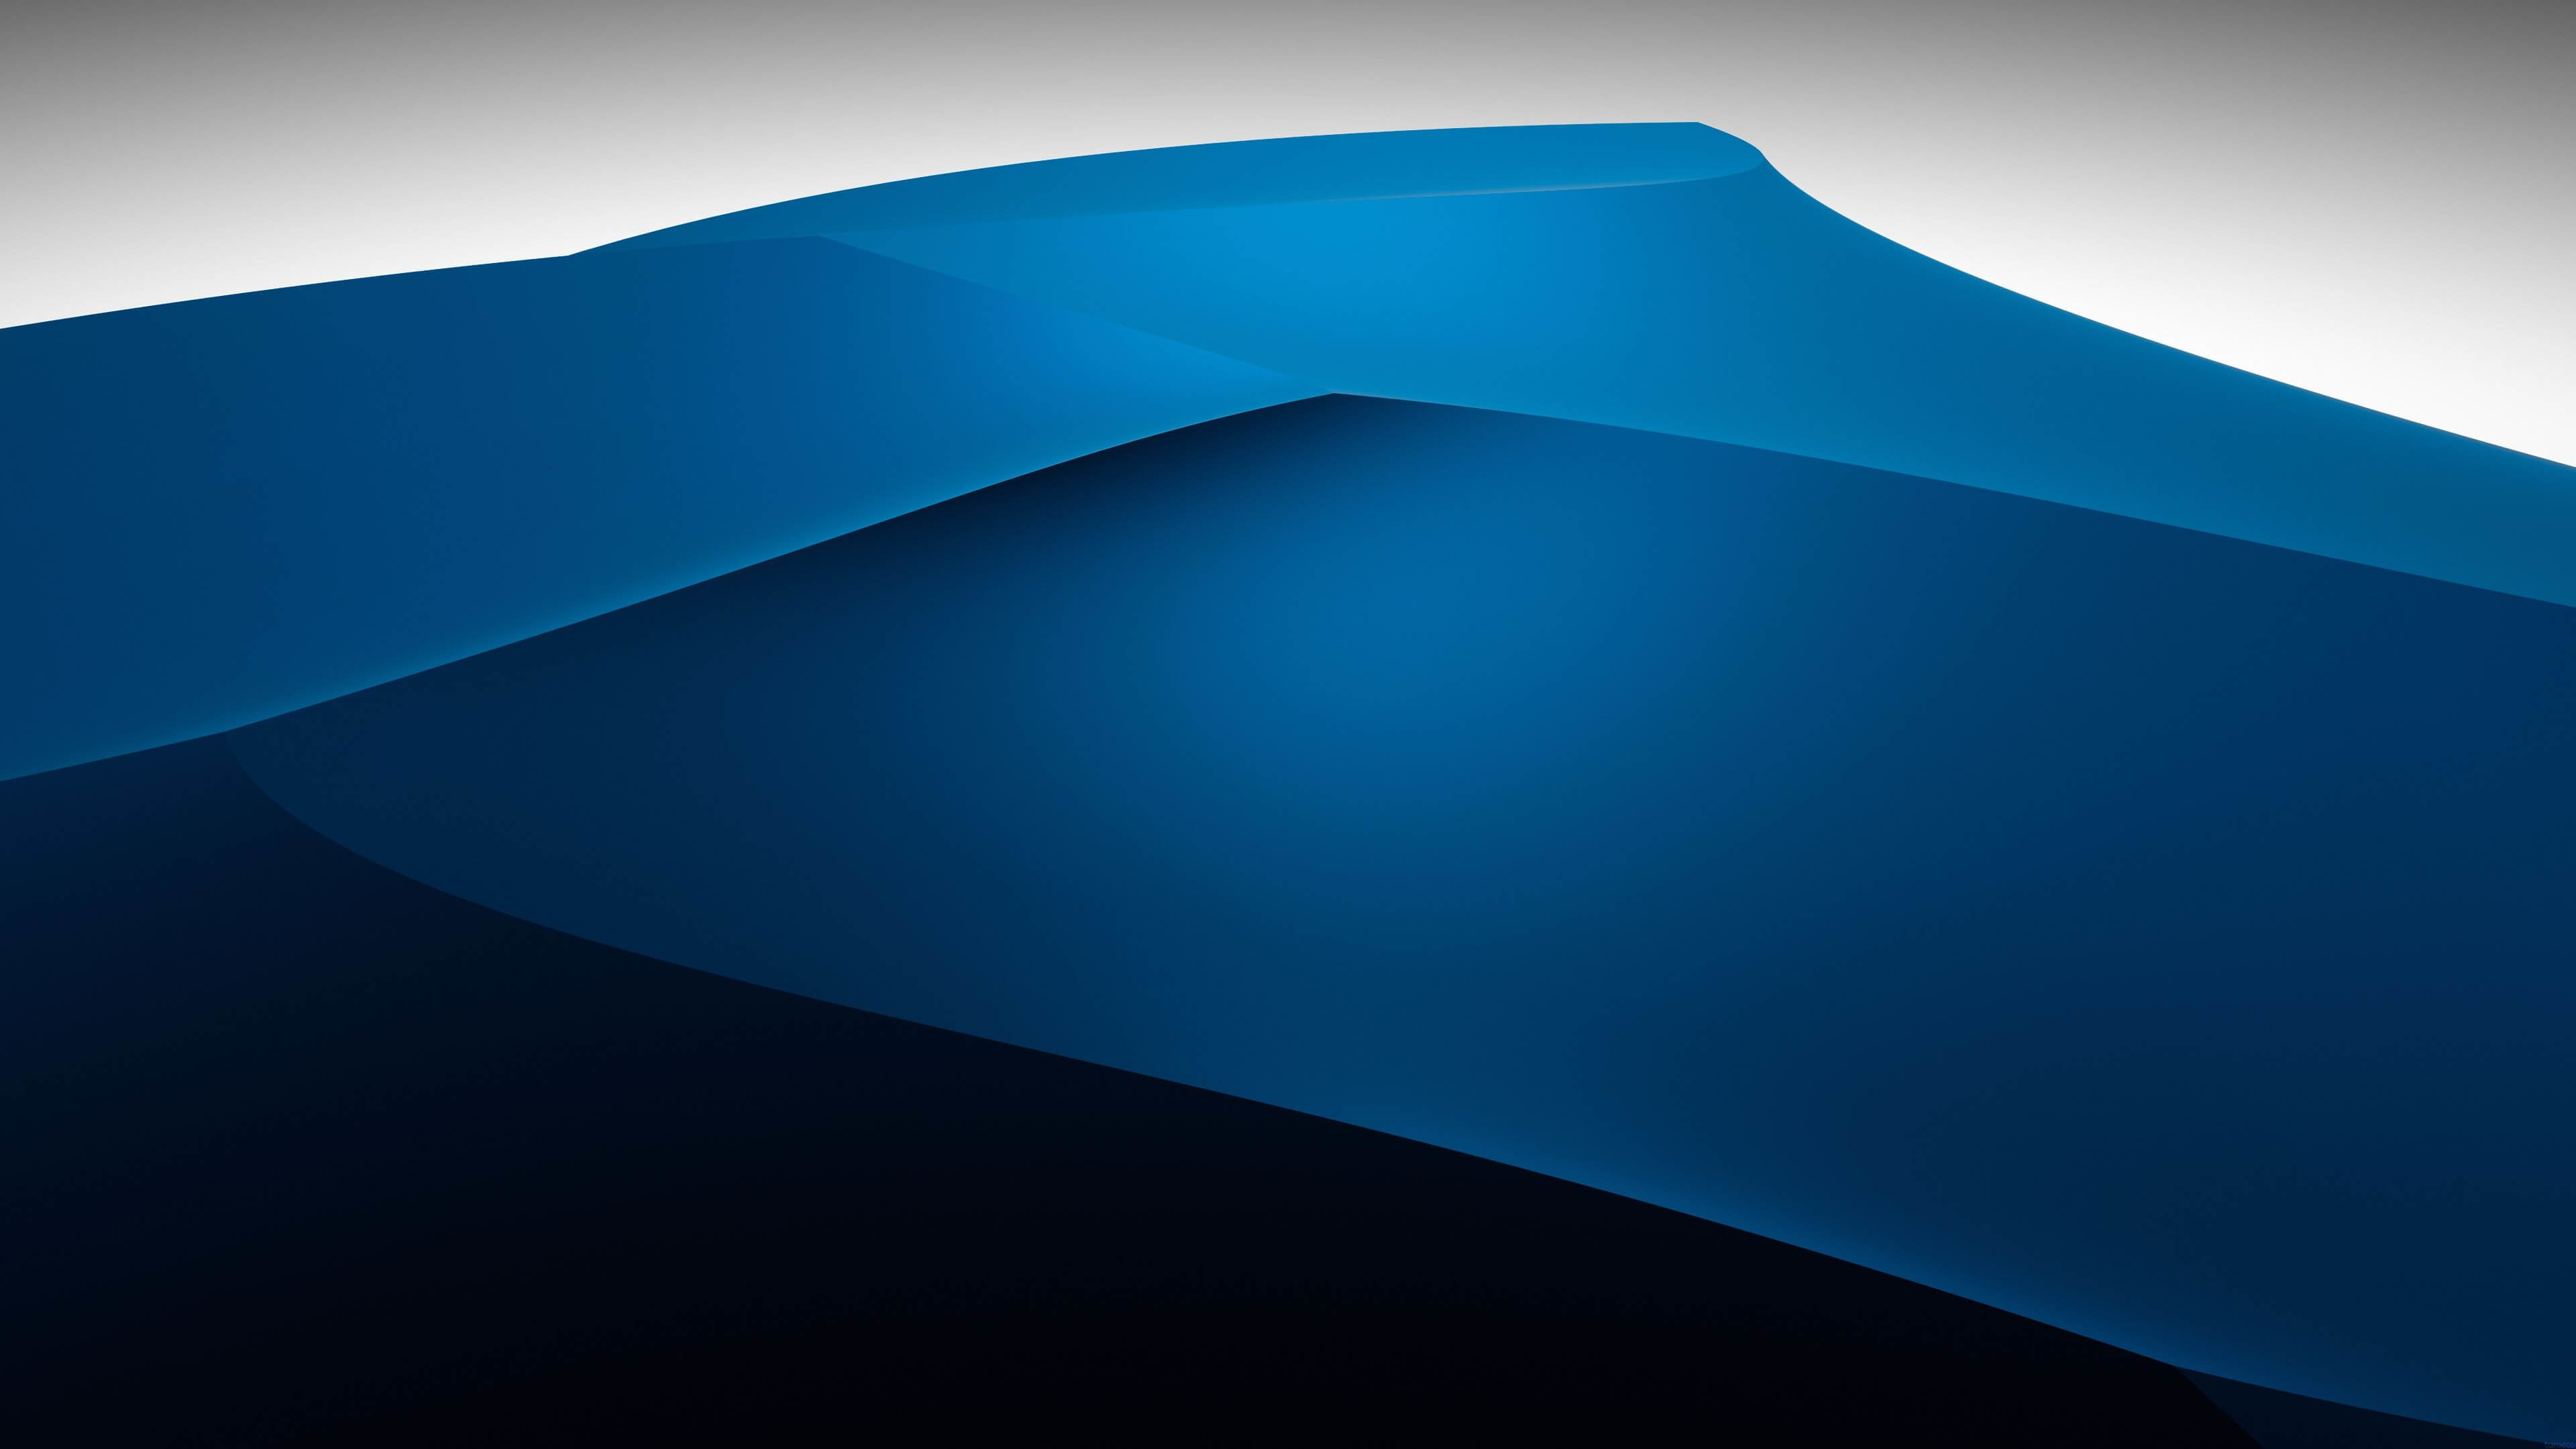 3D Blue Dunes Wallpaper for Desktop 4K 3840x2160